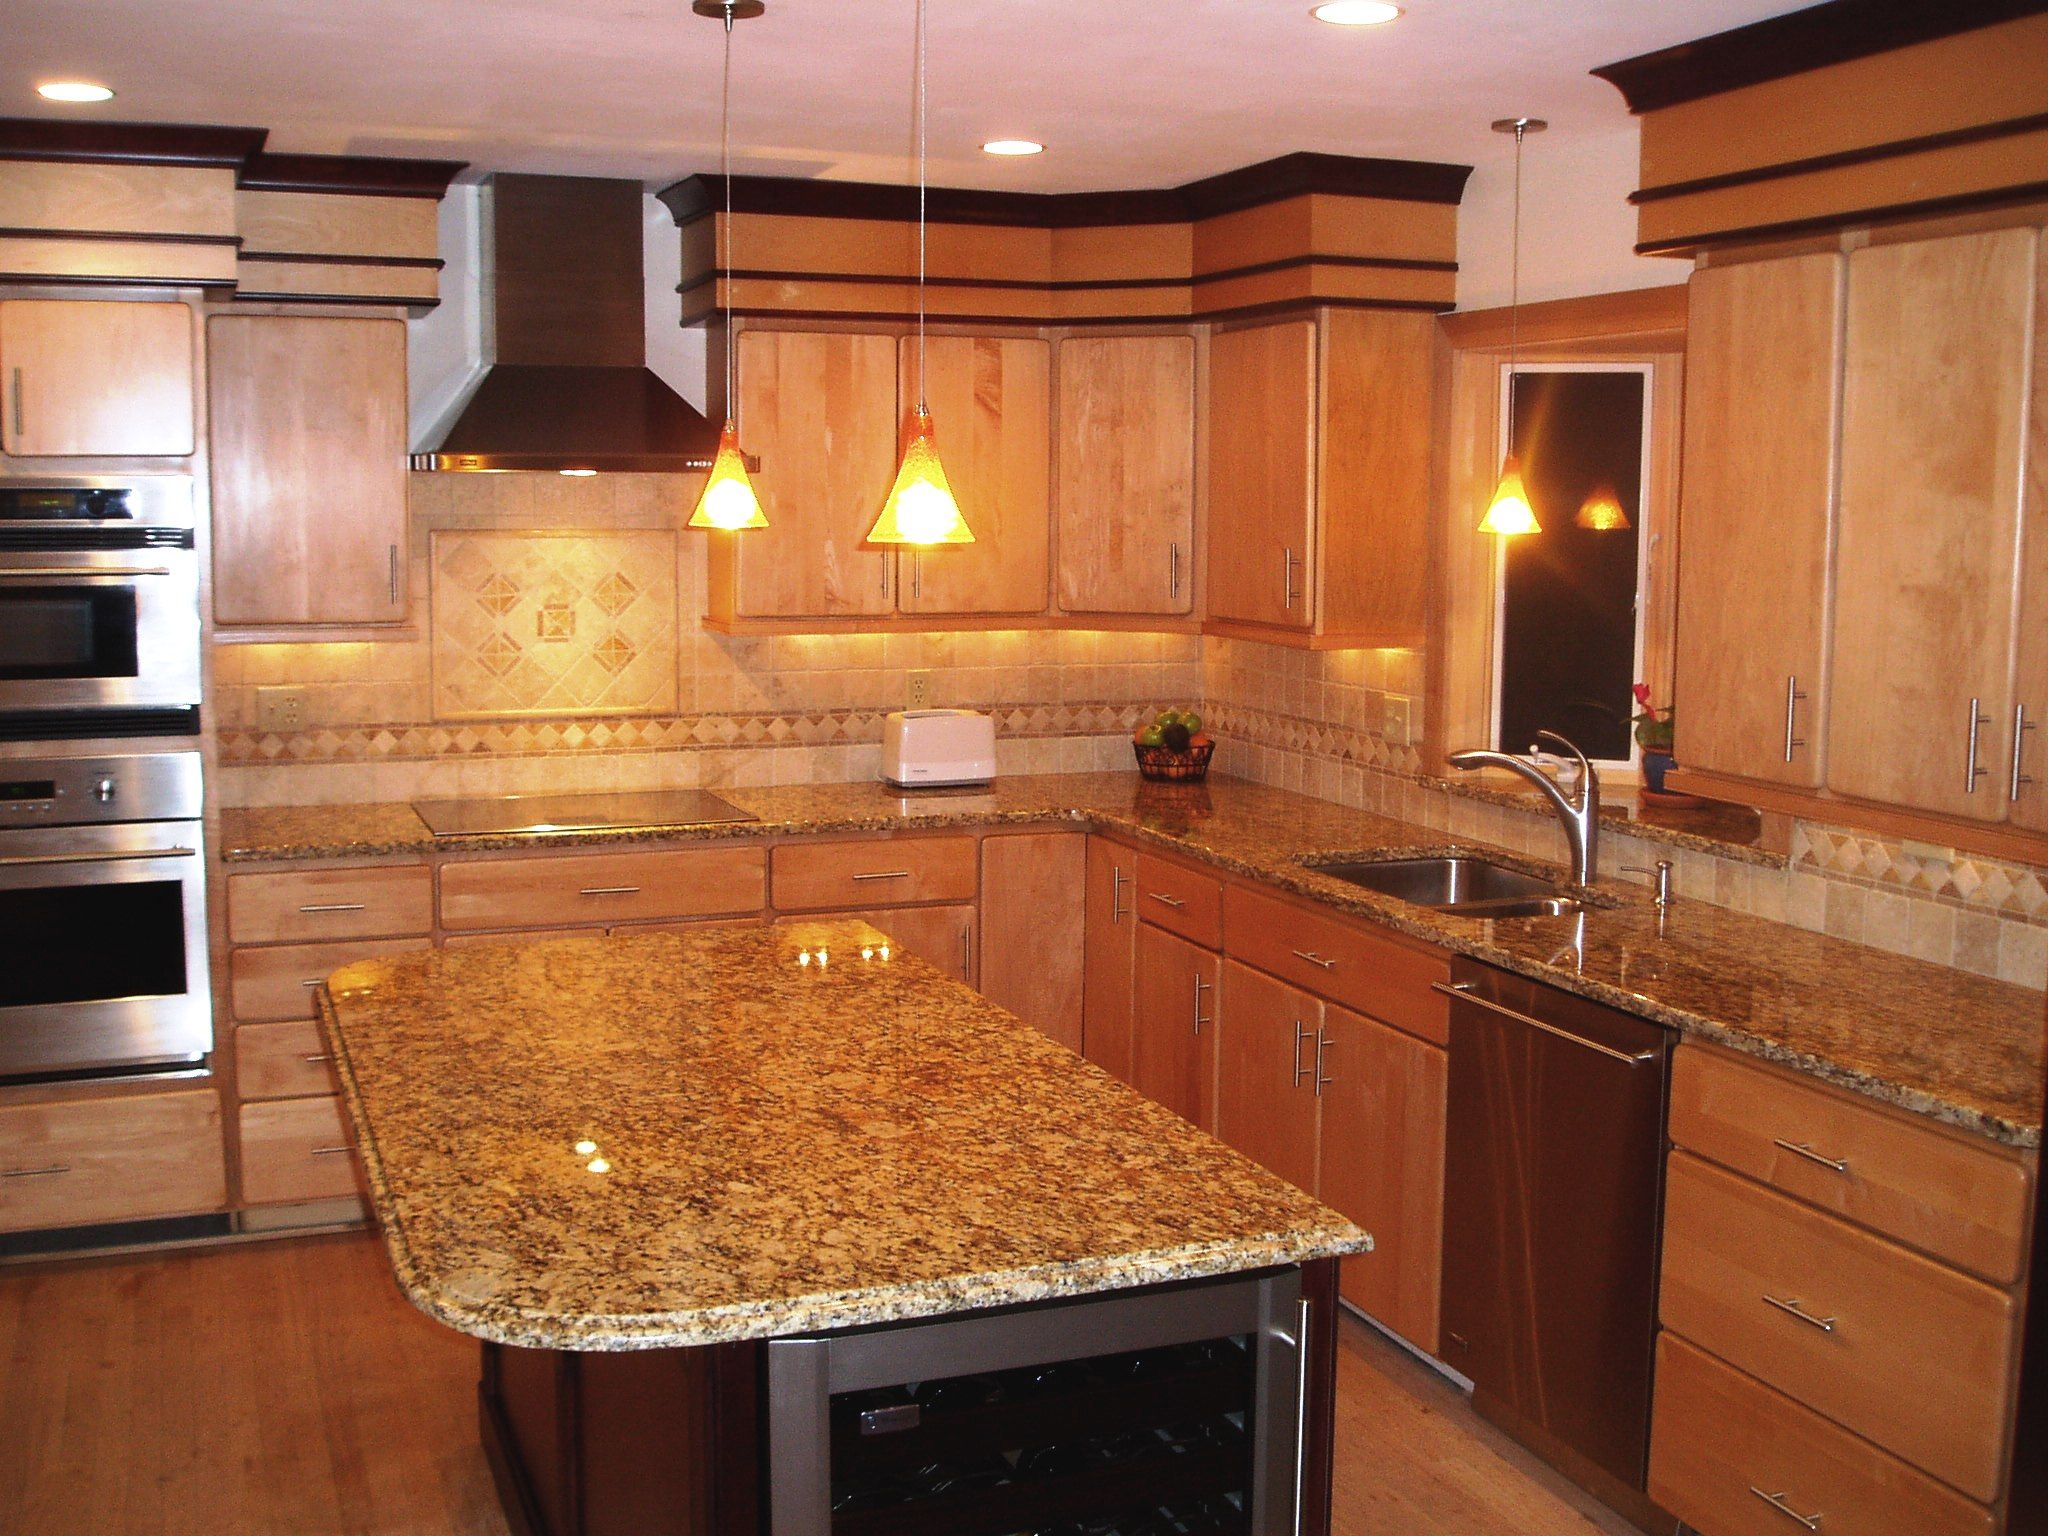 Oak Cabinets With Granite Countertops Pictures Oak Kitchen Cabinets With Granite Countertops